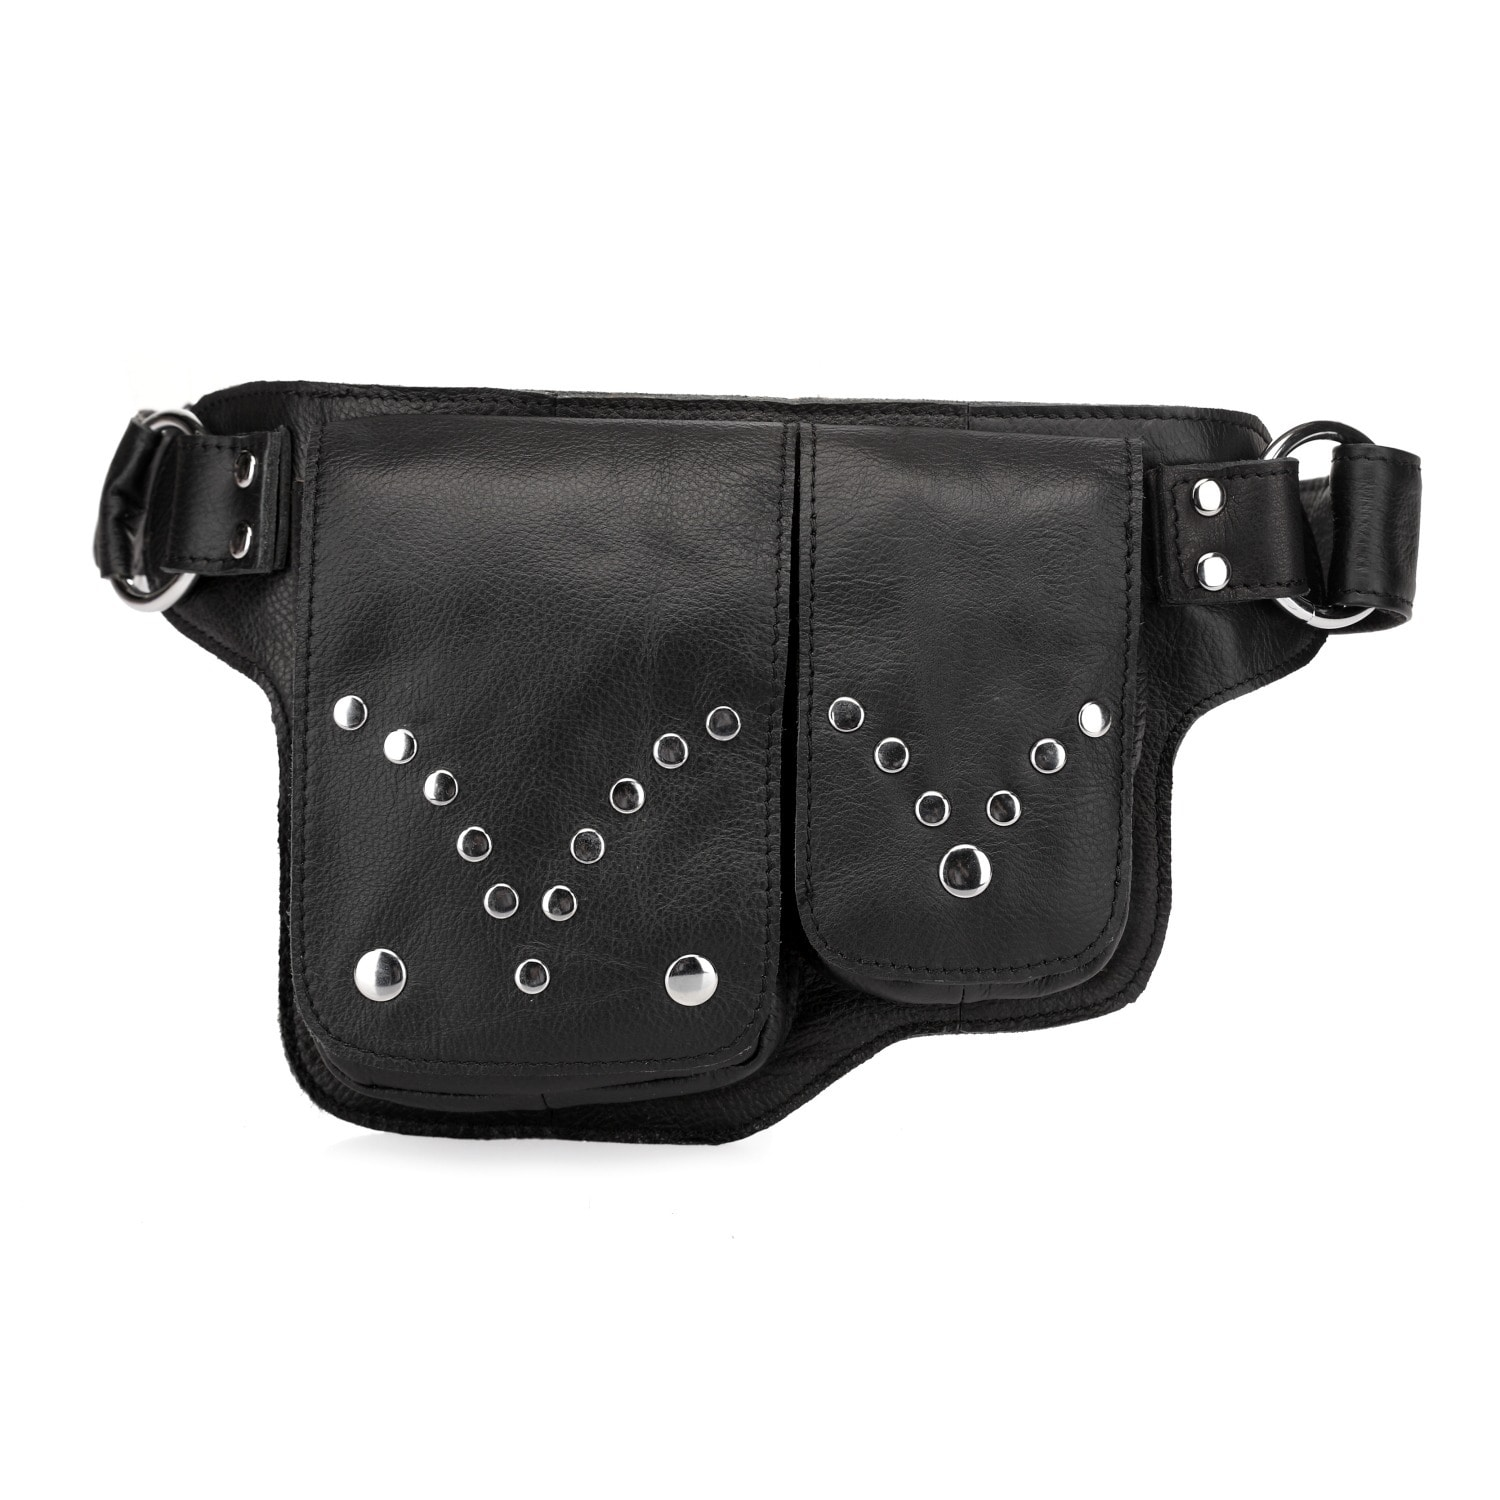 0c6954fb0f80 Shop Vicenzo Leather Adonis Small Leather Waist Bag Waist Pack - Free  Shipping Today - Overstock - 10363580